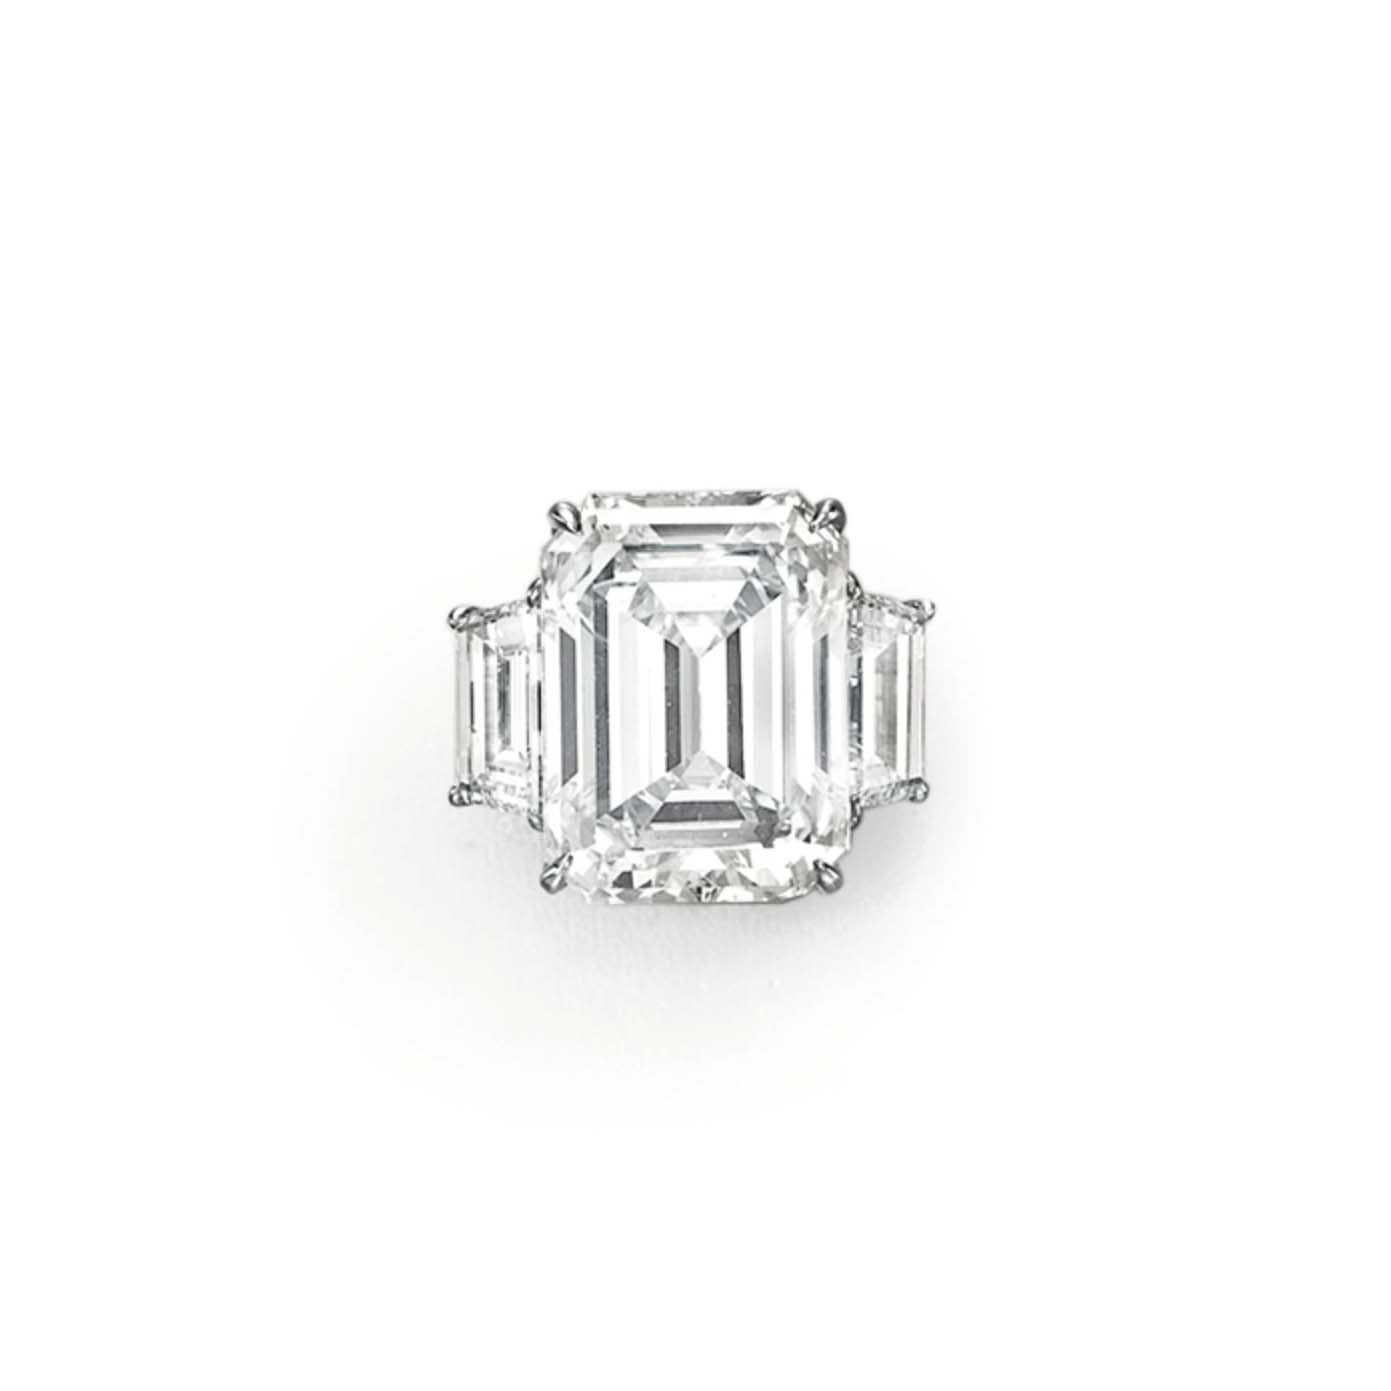 AN IMPRESSIVE DIAMOND RING, BY LORRAINE SCHWARTZ